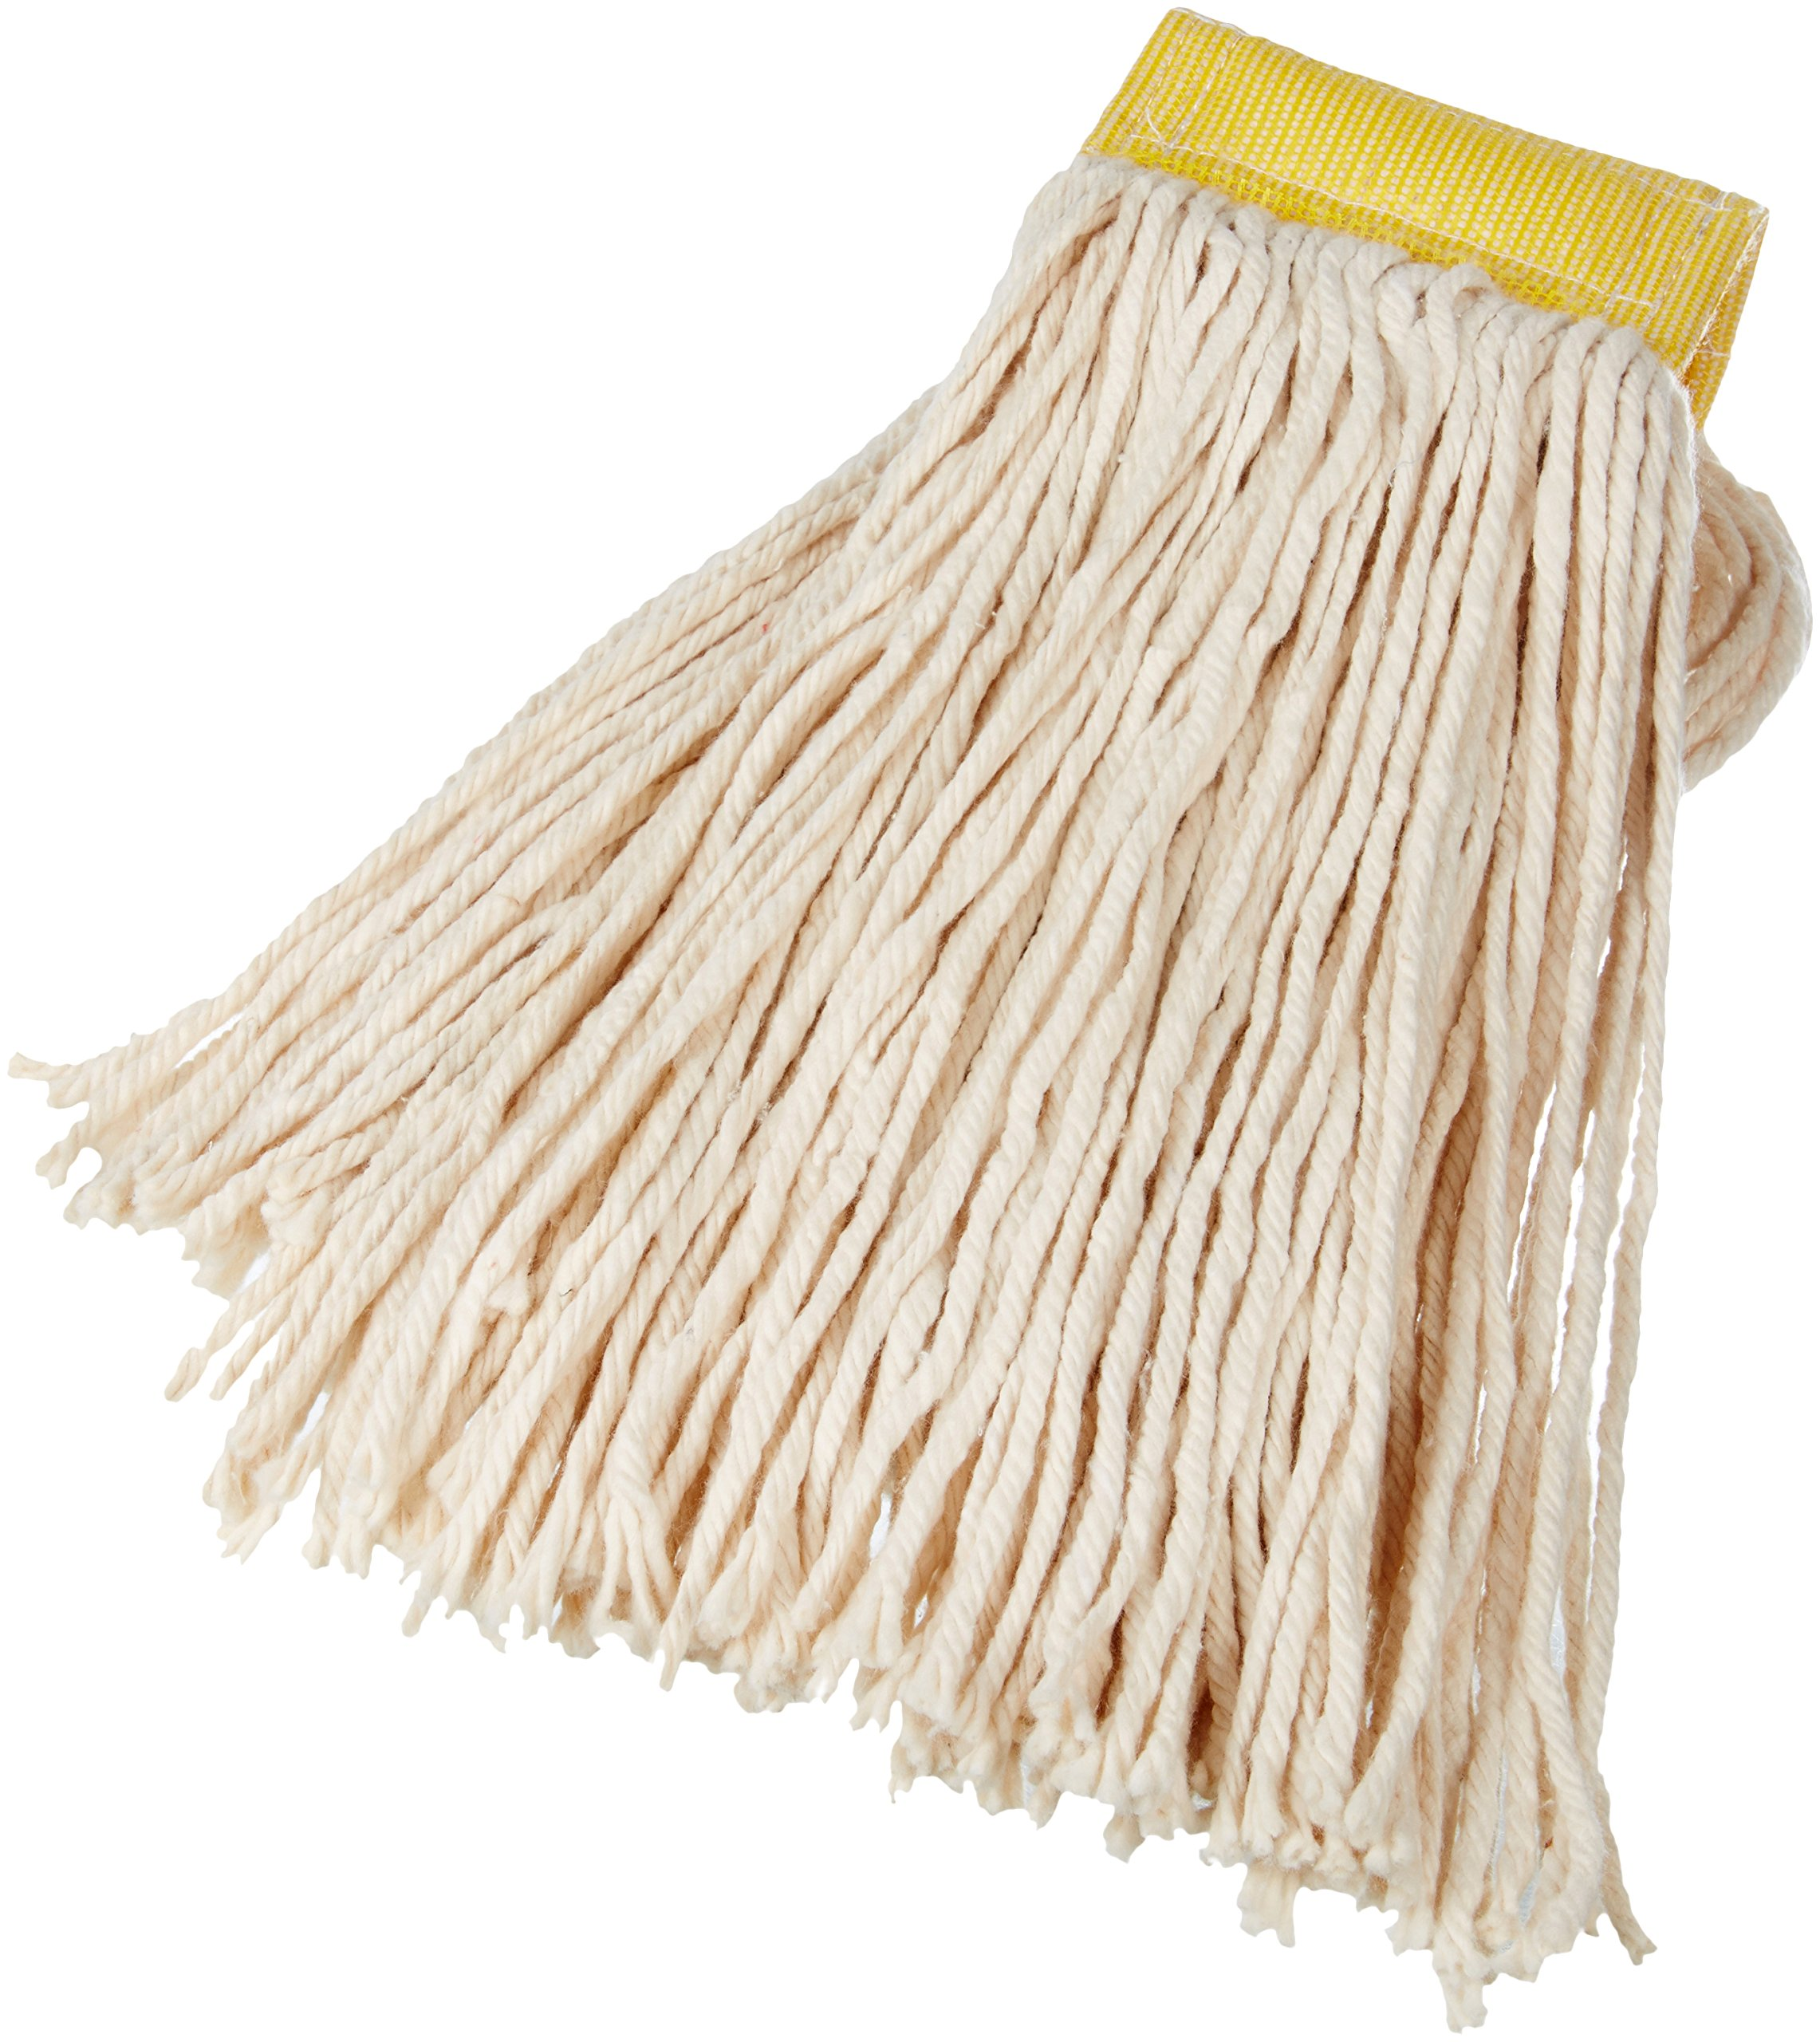 AmazonBasics Cut-End Cotton Commercial String Mop Head, 5 Inch Headband, Large, White, 6-Pack by AmazonBasics